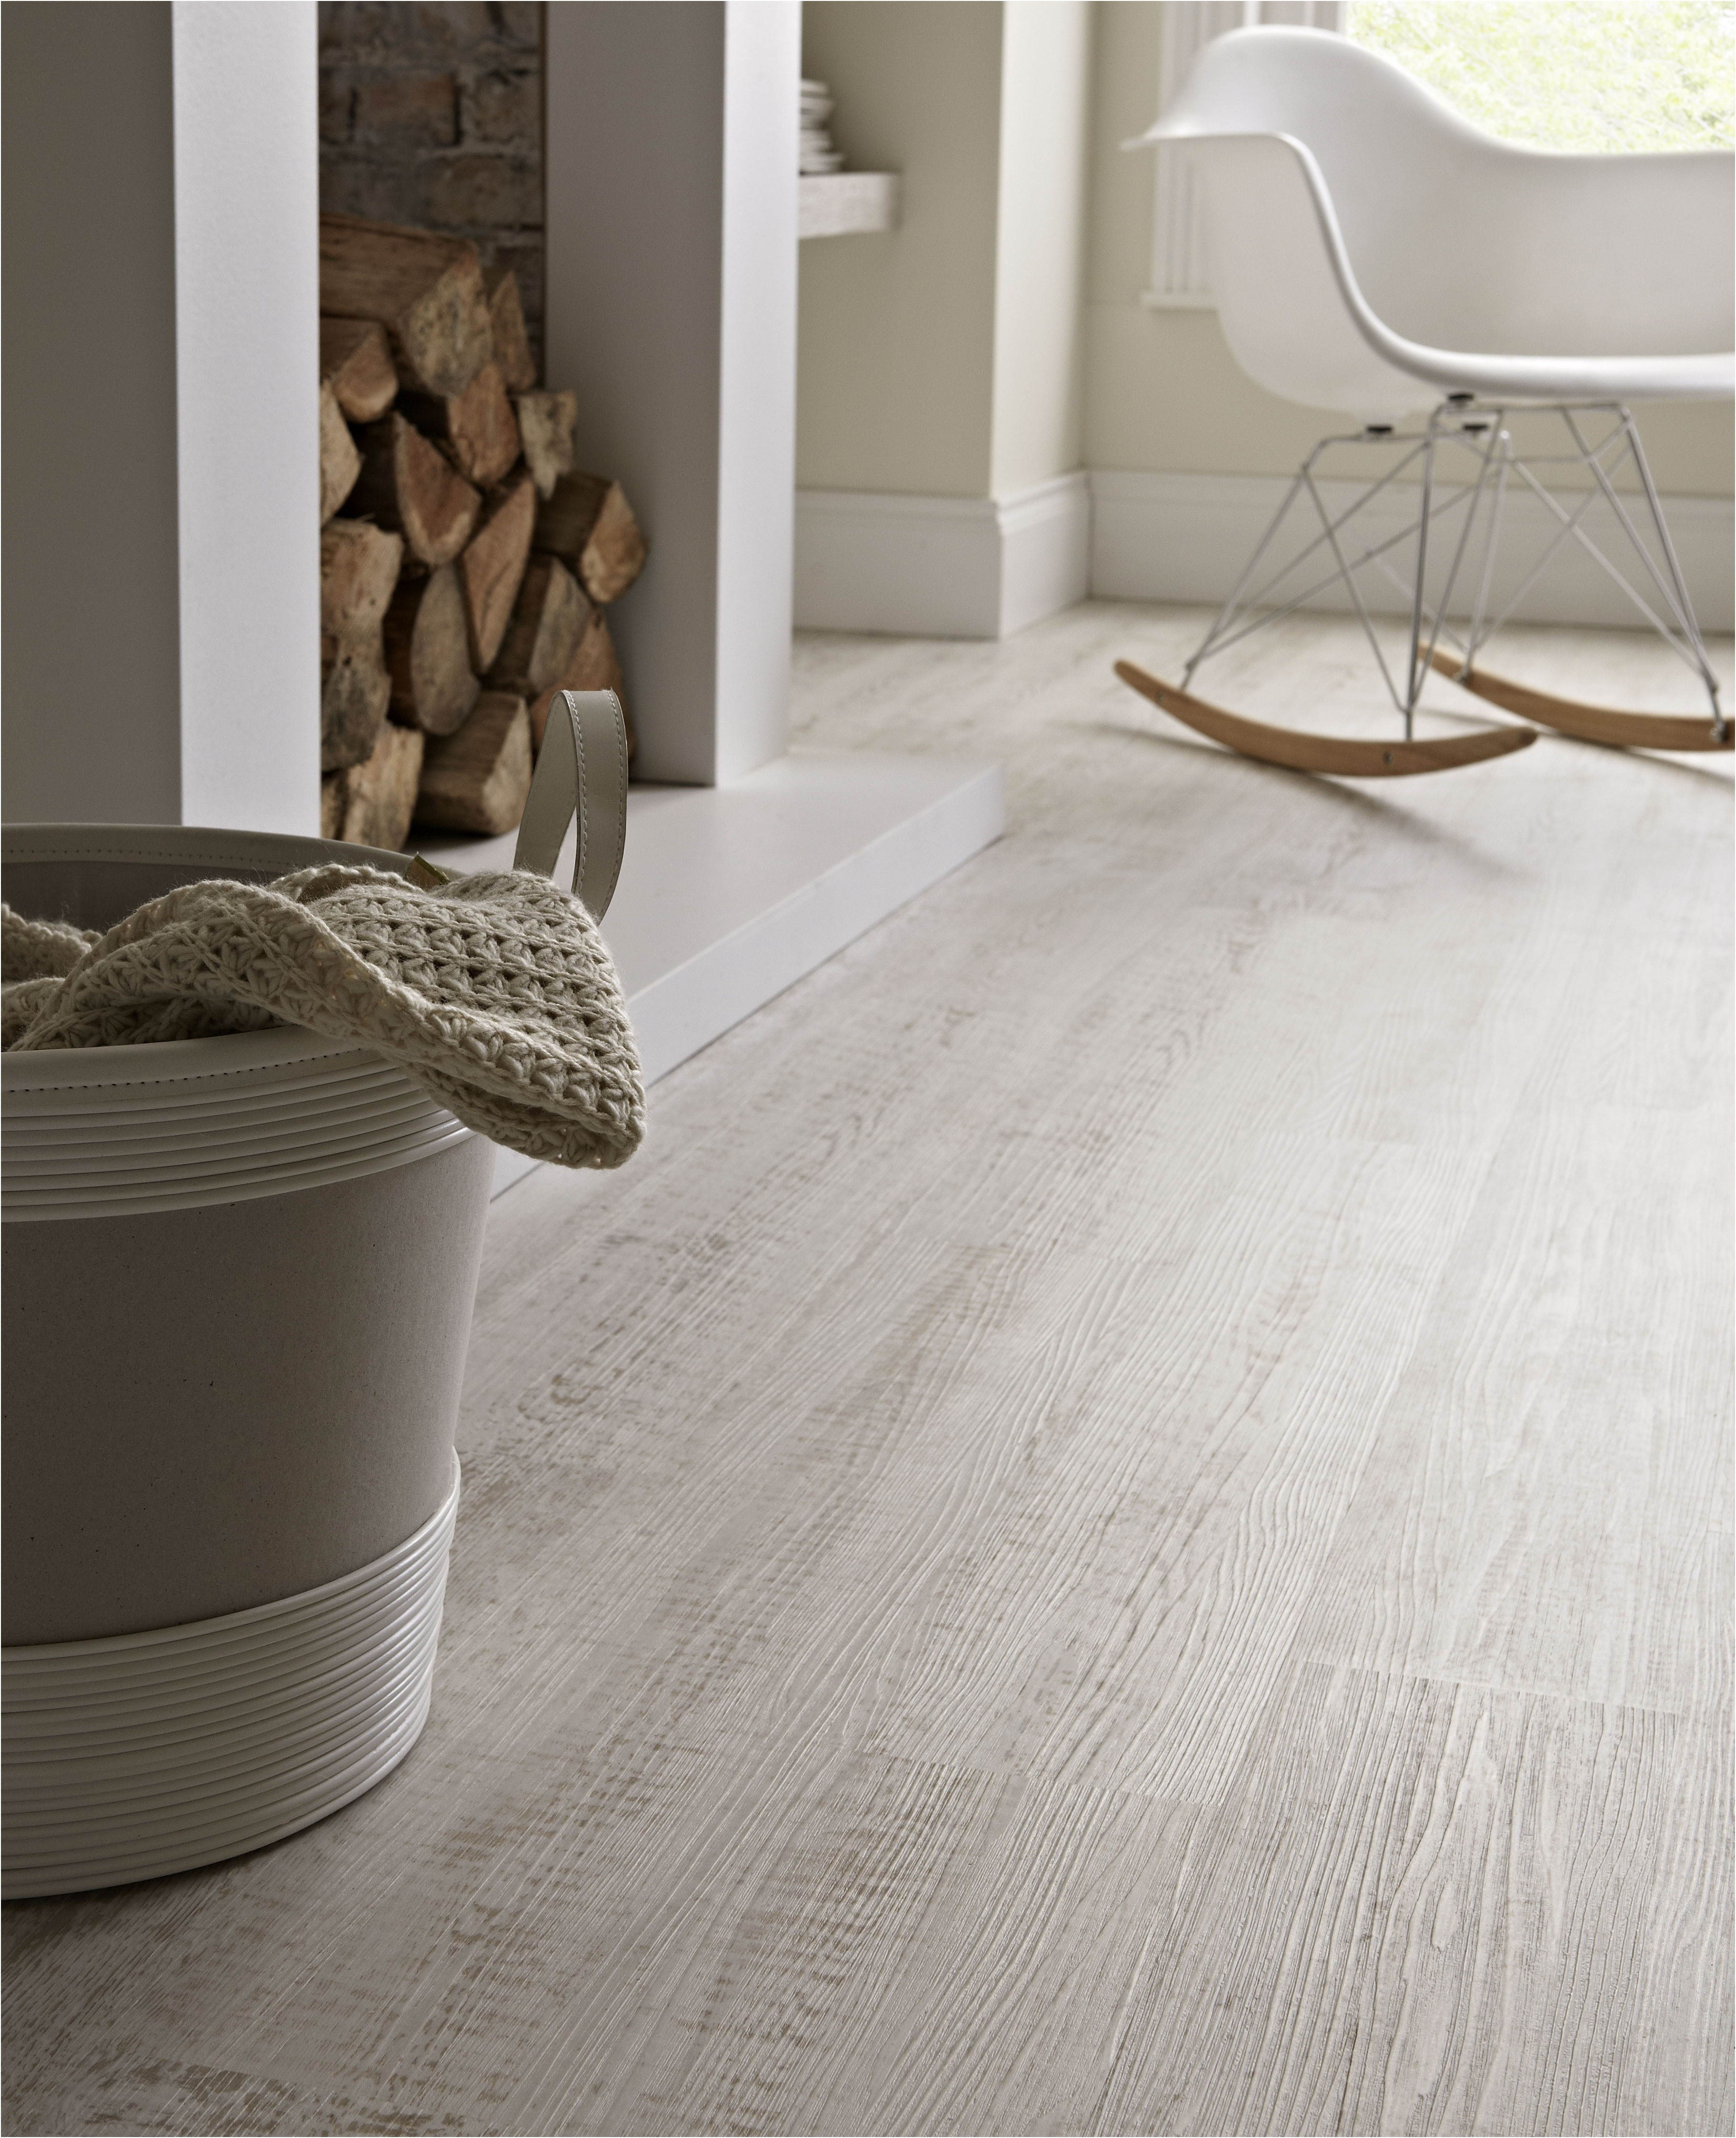 prefinished hardwood flooring home depot of flooring design ideas find ideas and inspiration for flooring throughout 25 new waterproof laminate flooring home depot photograph